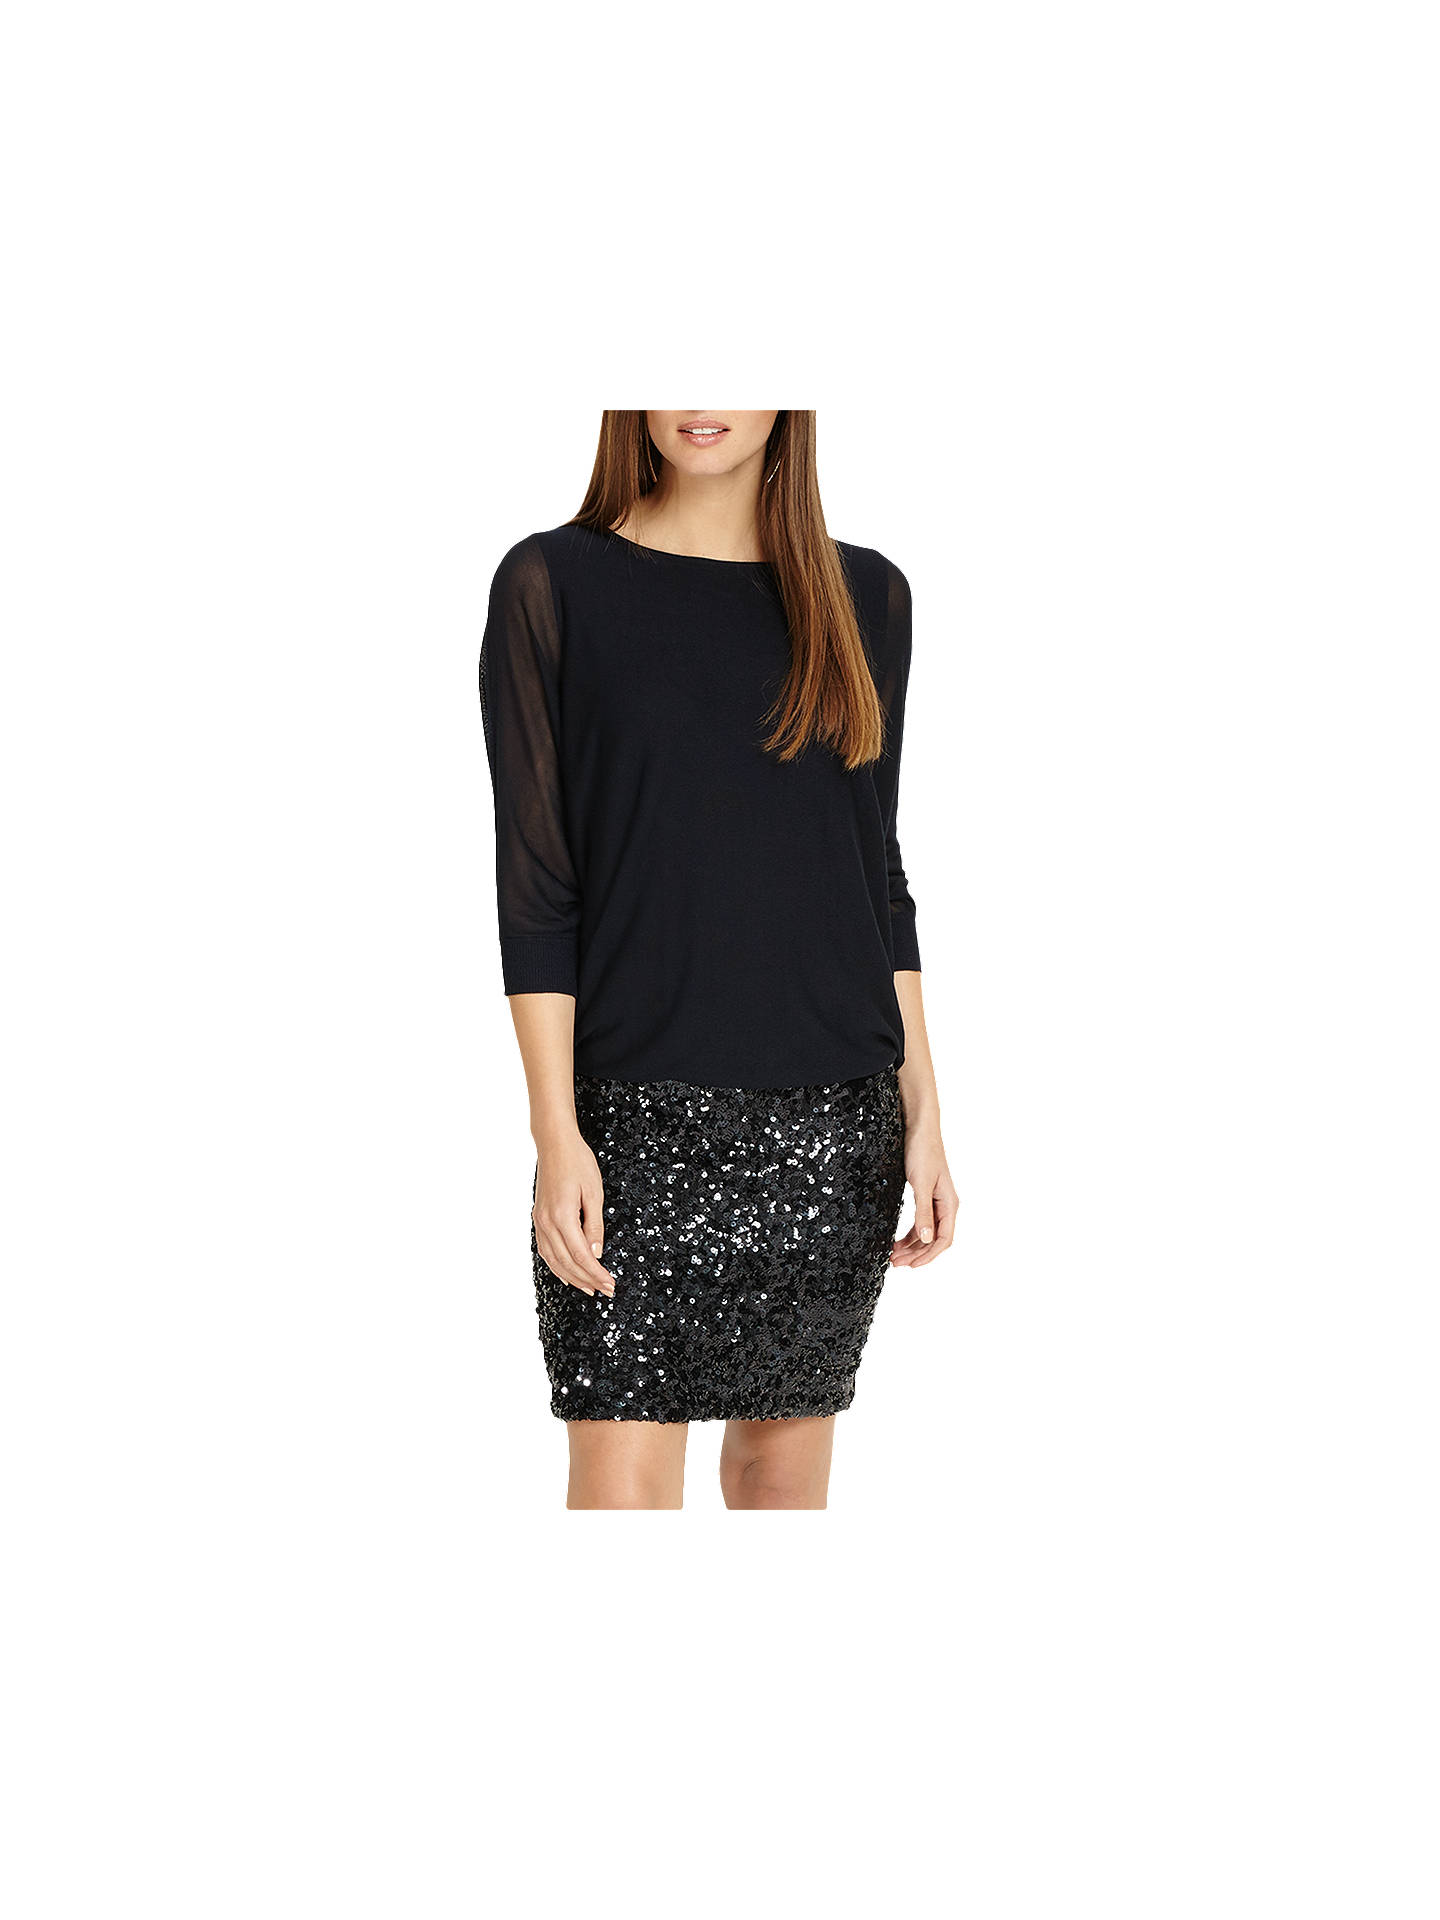 d19fa4b6 Buy Phase Eight Geonna Sequin Skirt Dress, Midnight, 8 Online at  johnlewis.com ...